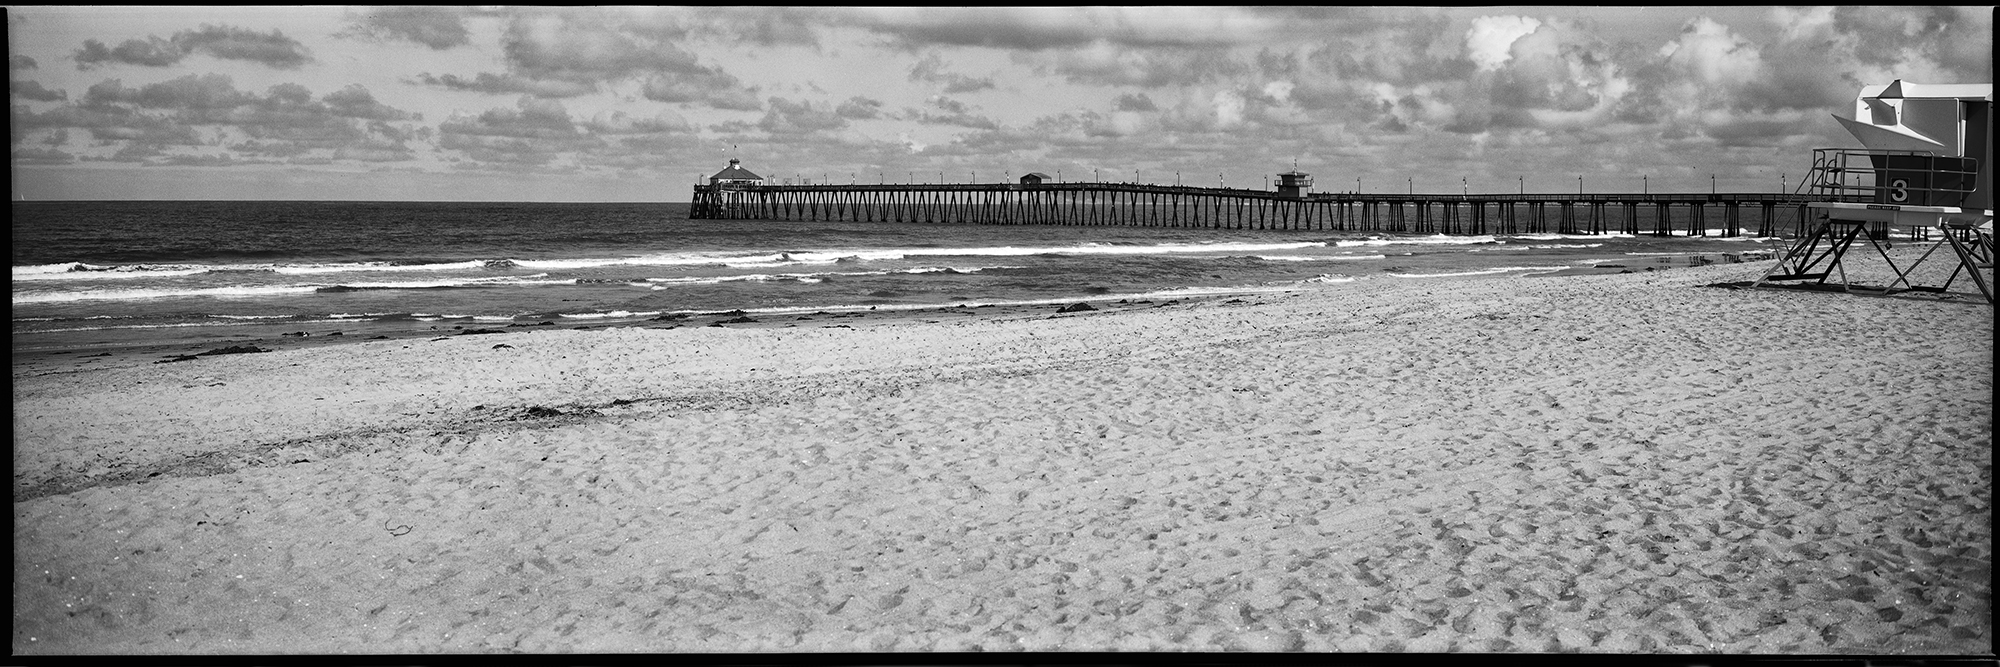 The Pier at Imperial Beach